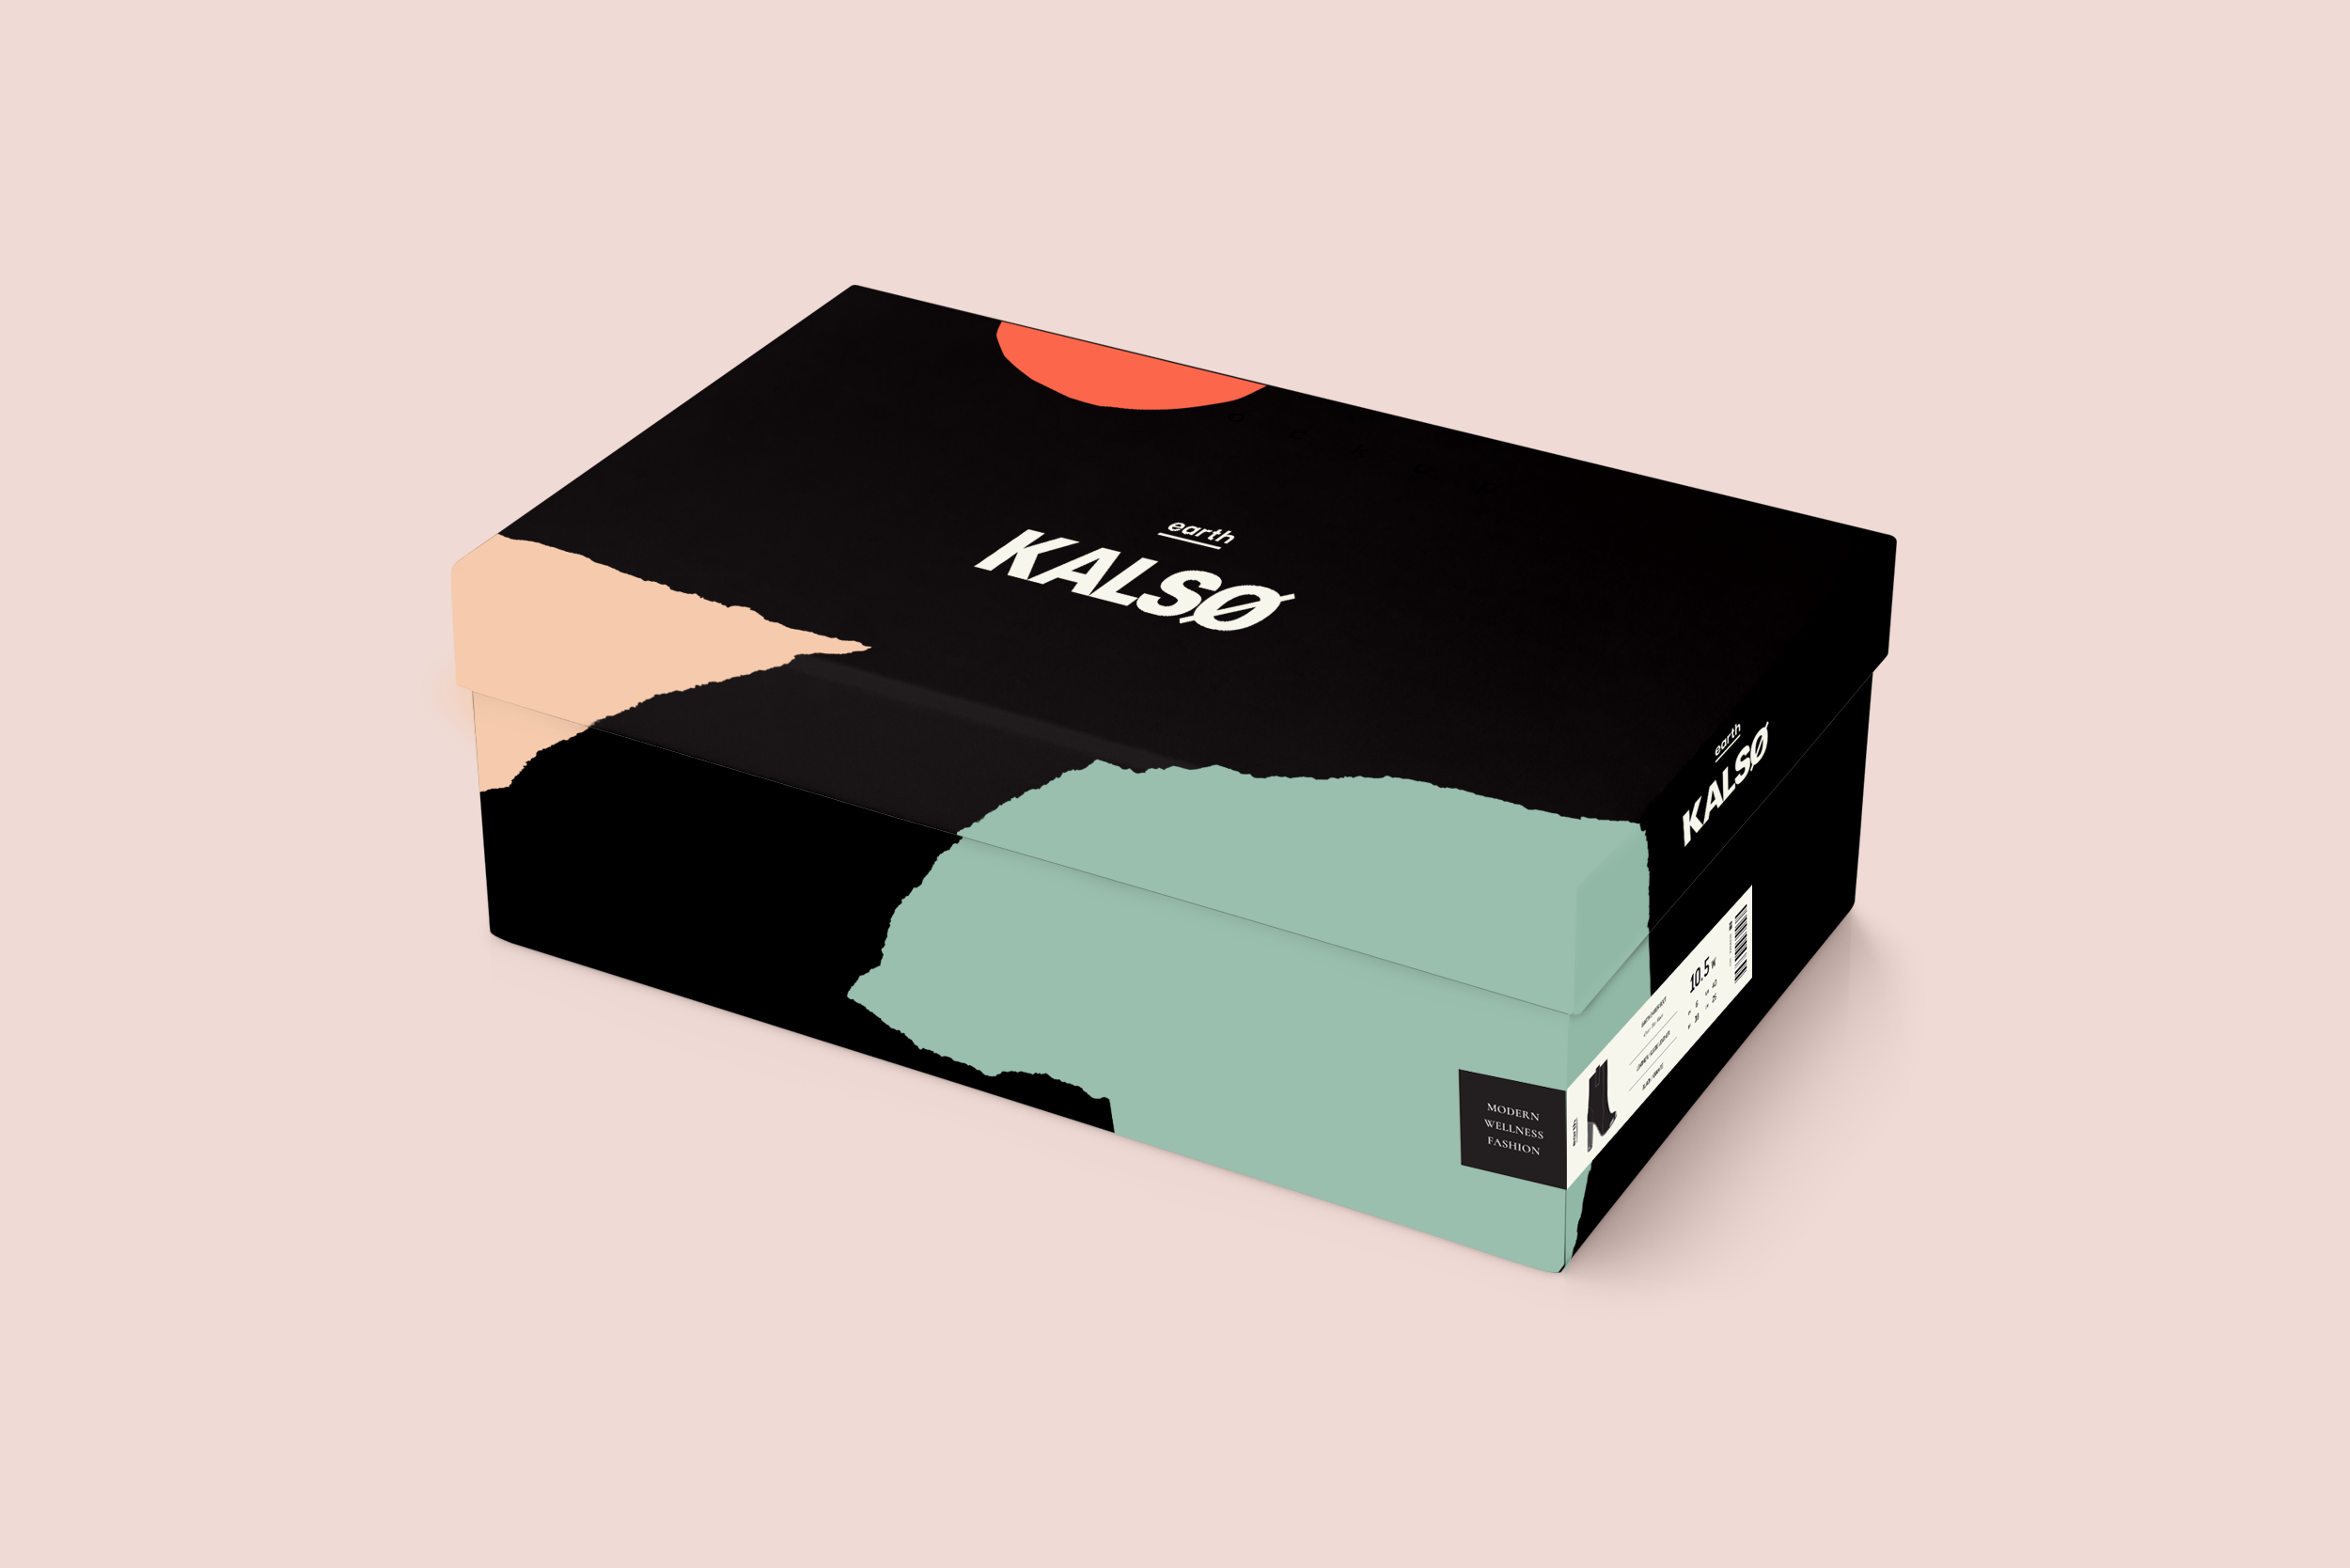 EARTH_KALSOFree+Shoe+Box+Mockup+PSD+2018.png